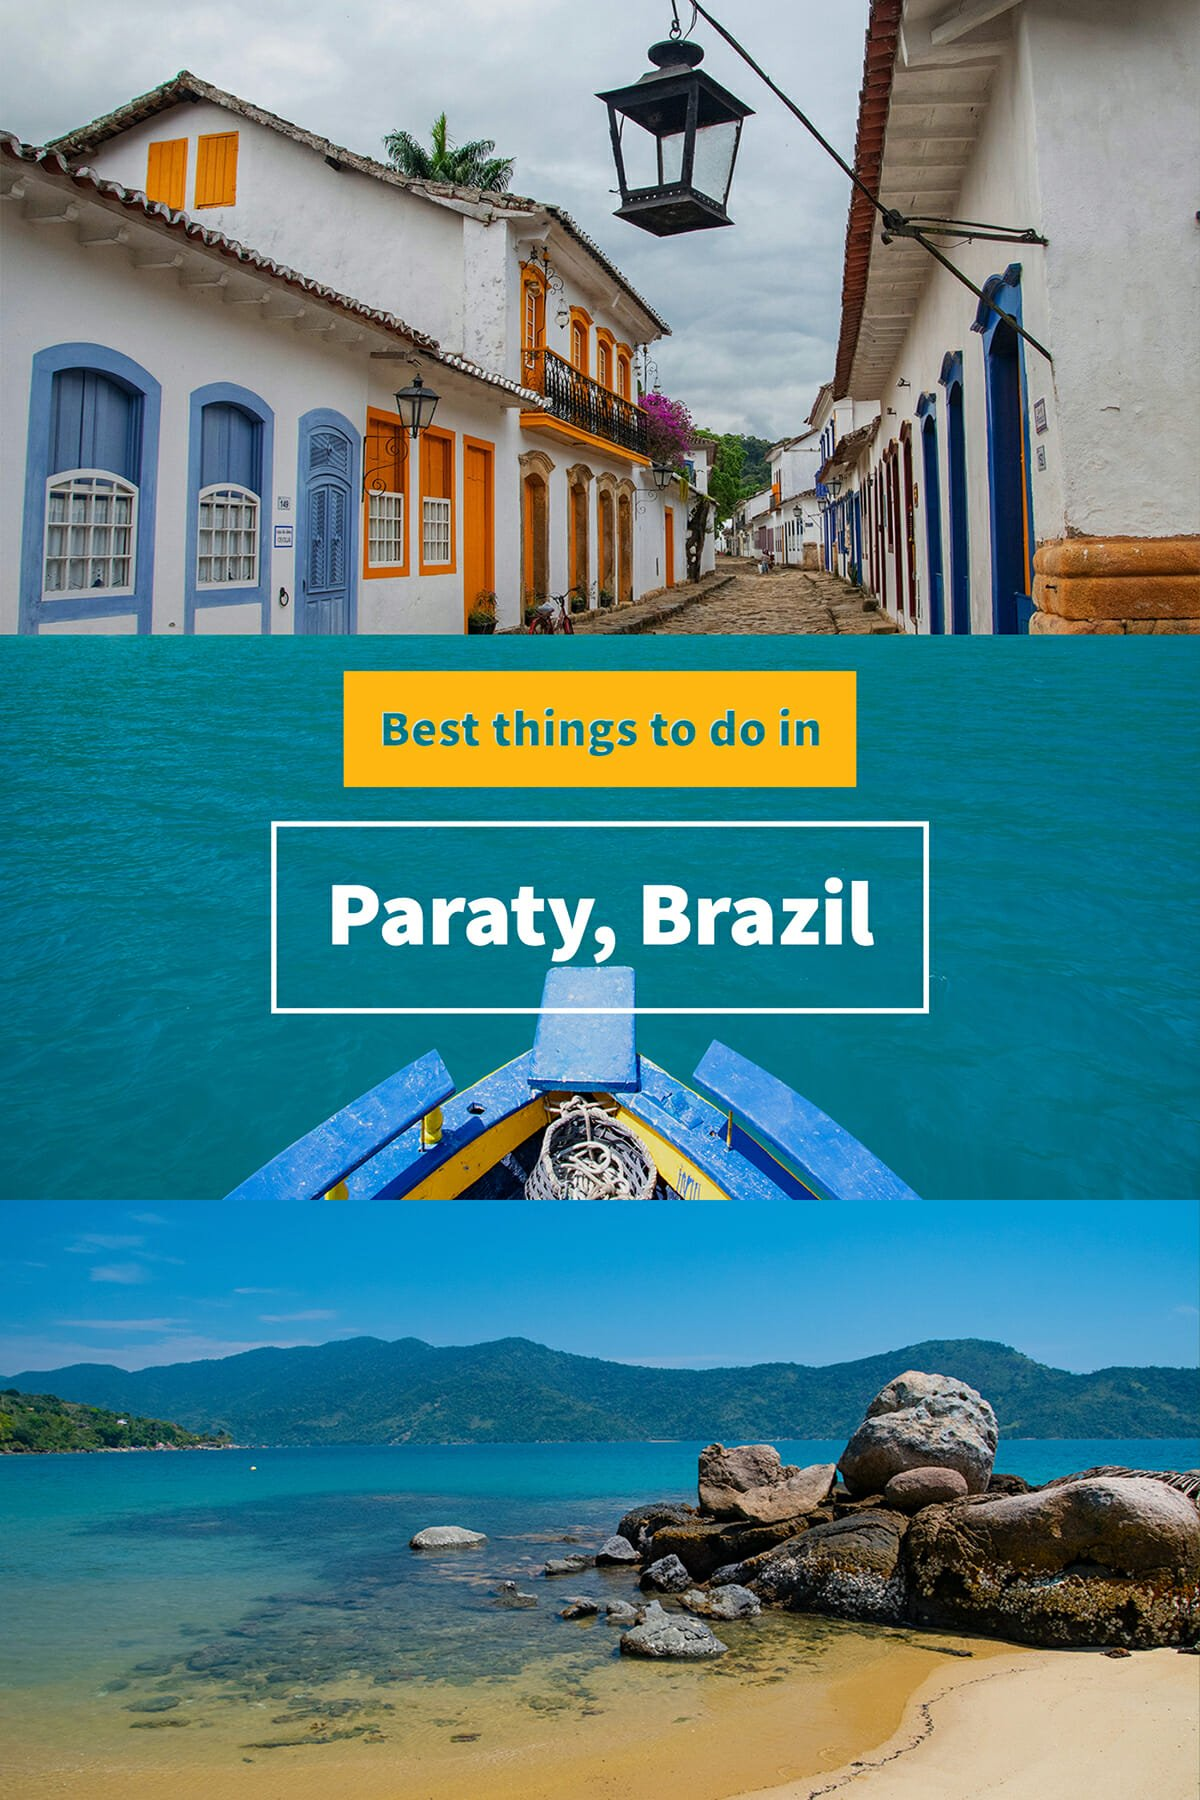 Best things to do in Paraty are Saco do Mamangua cruise, sandy beaches of Paraty and cobbled streets of Paraty historic center